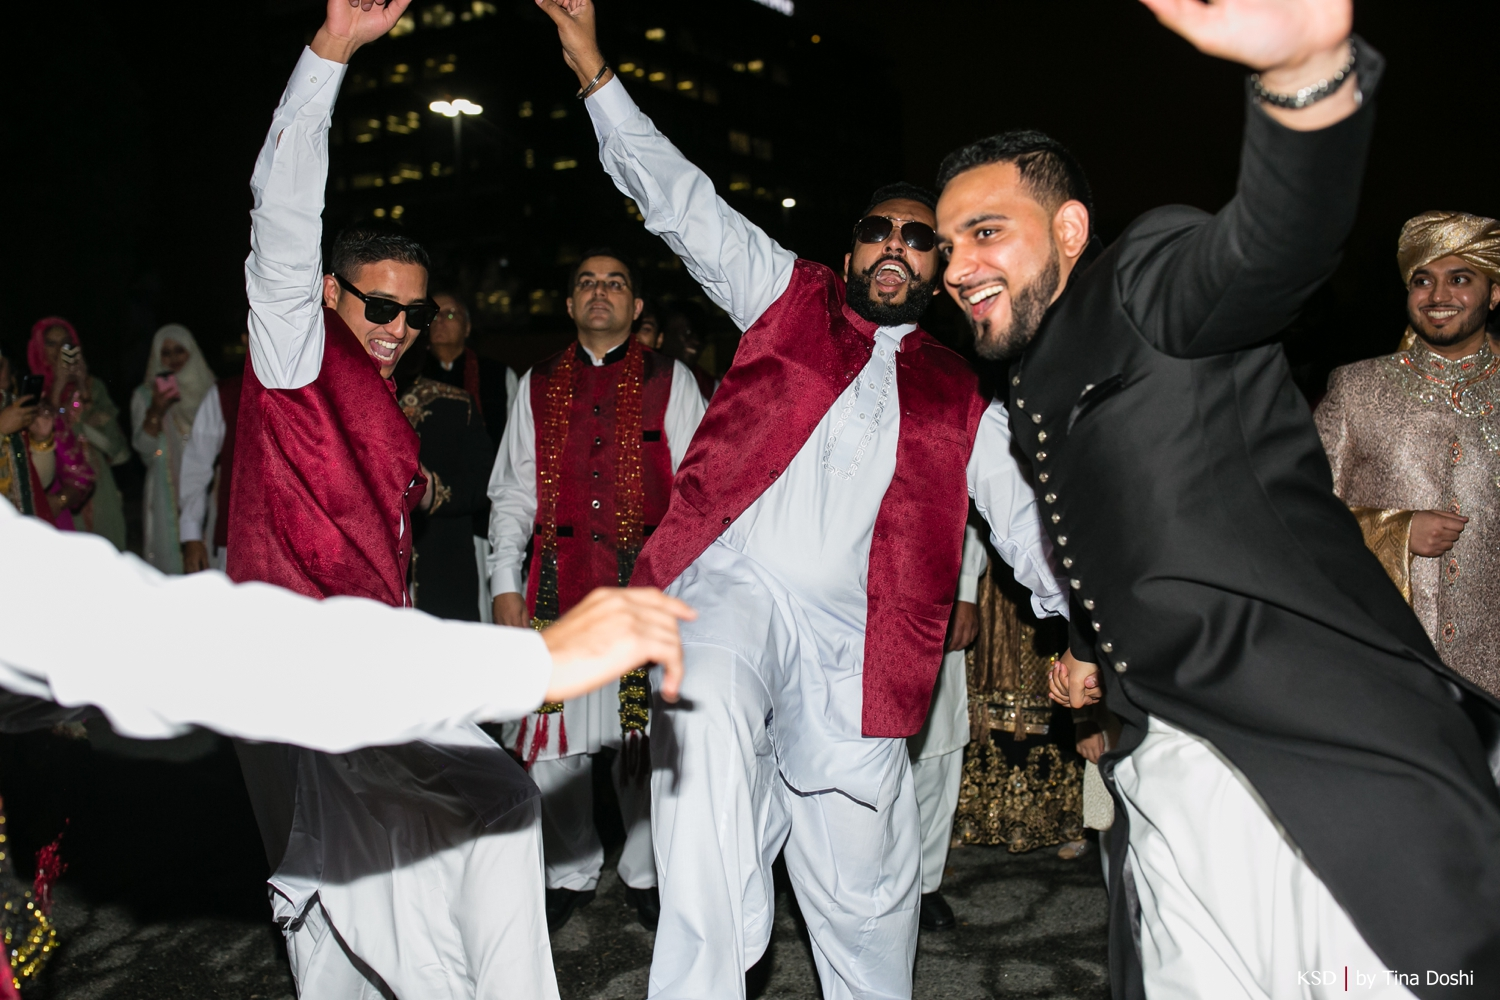 nj_south_asian_wedding_0033